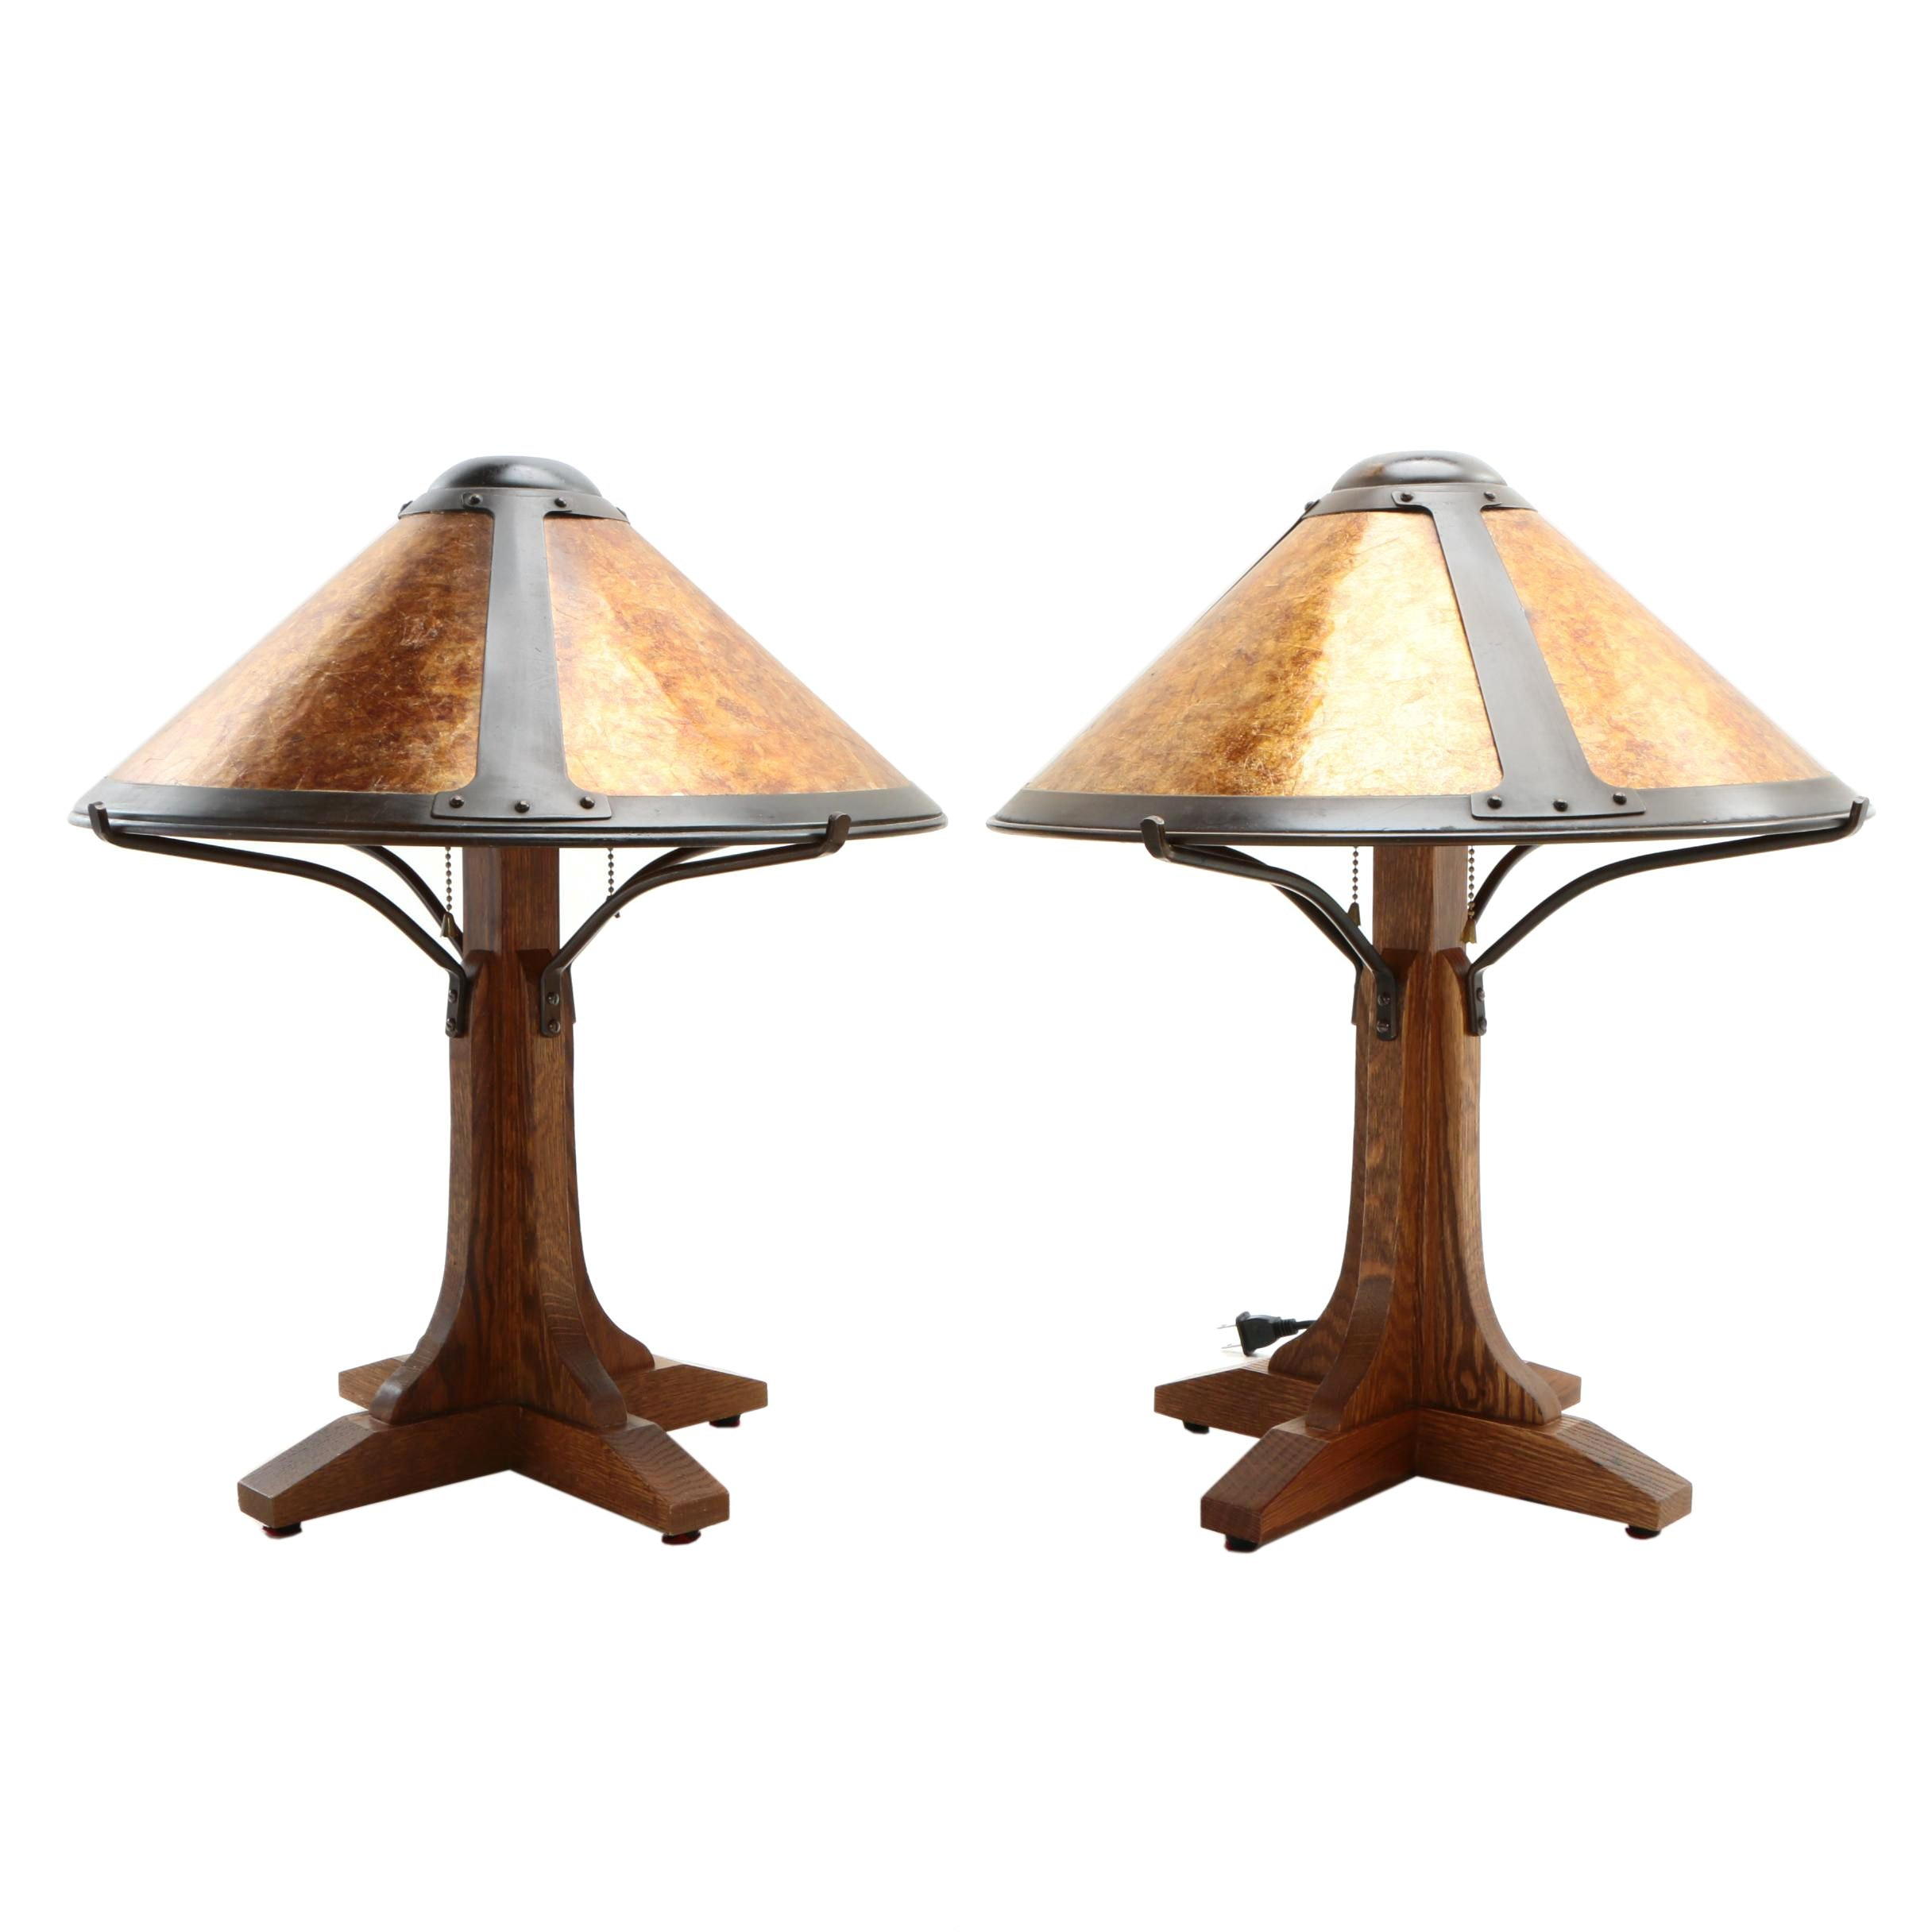 Arts and Crafts Oak Table Lamps with Mica Shades